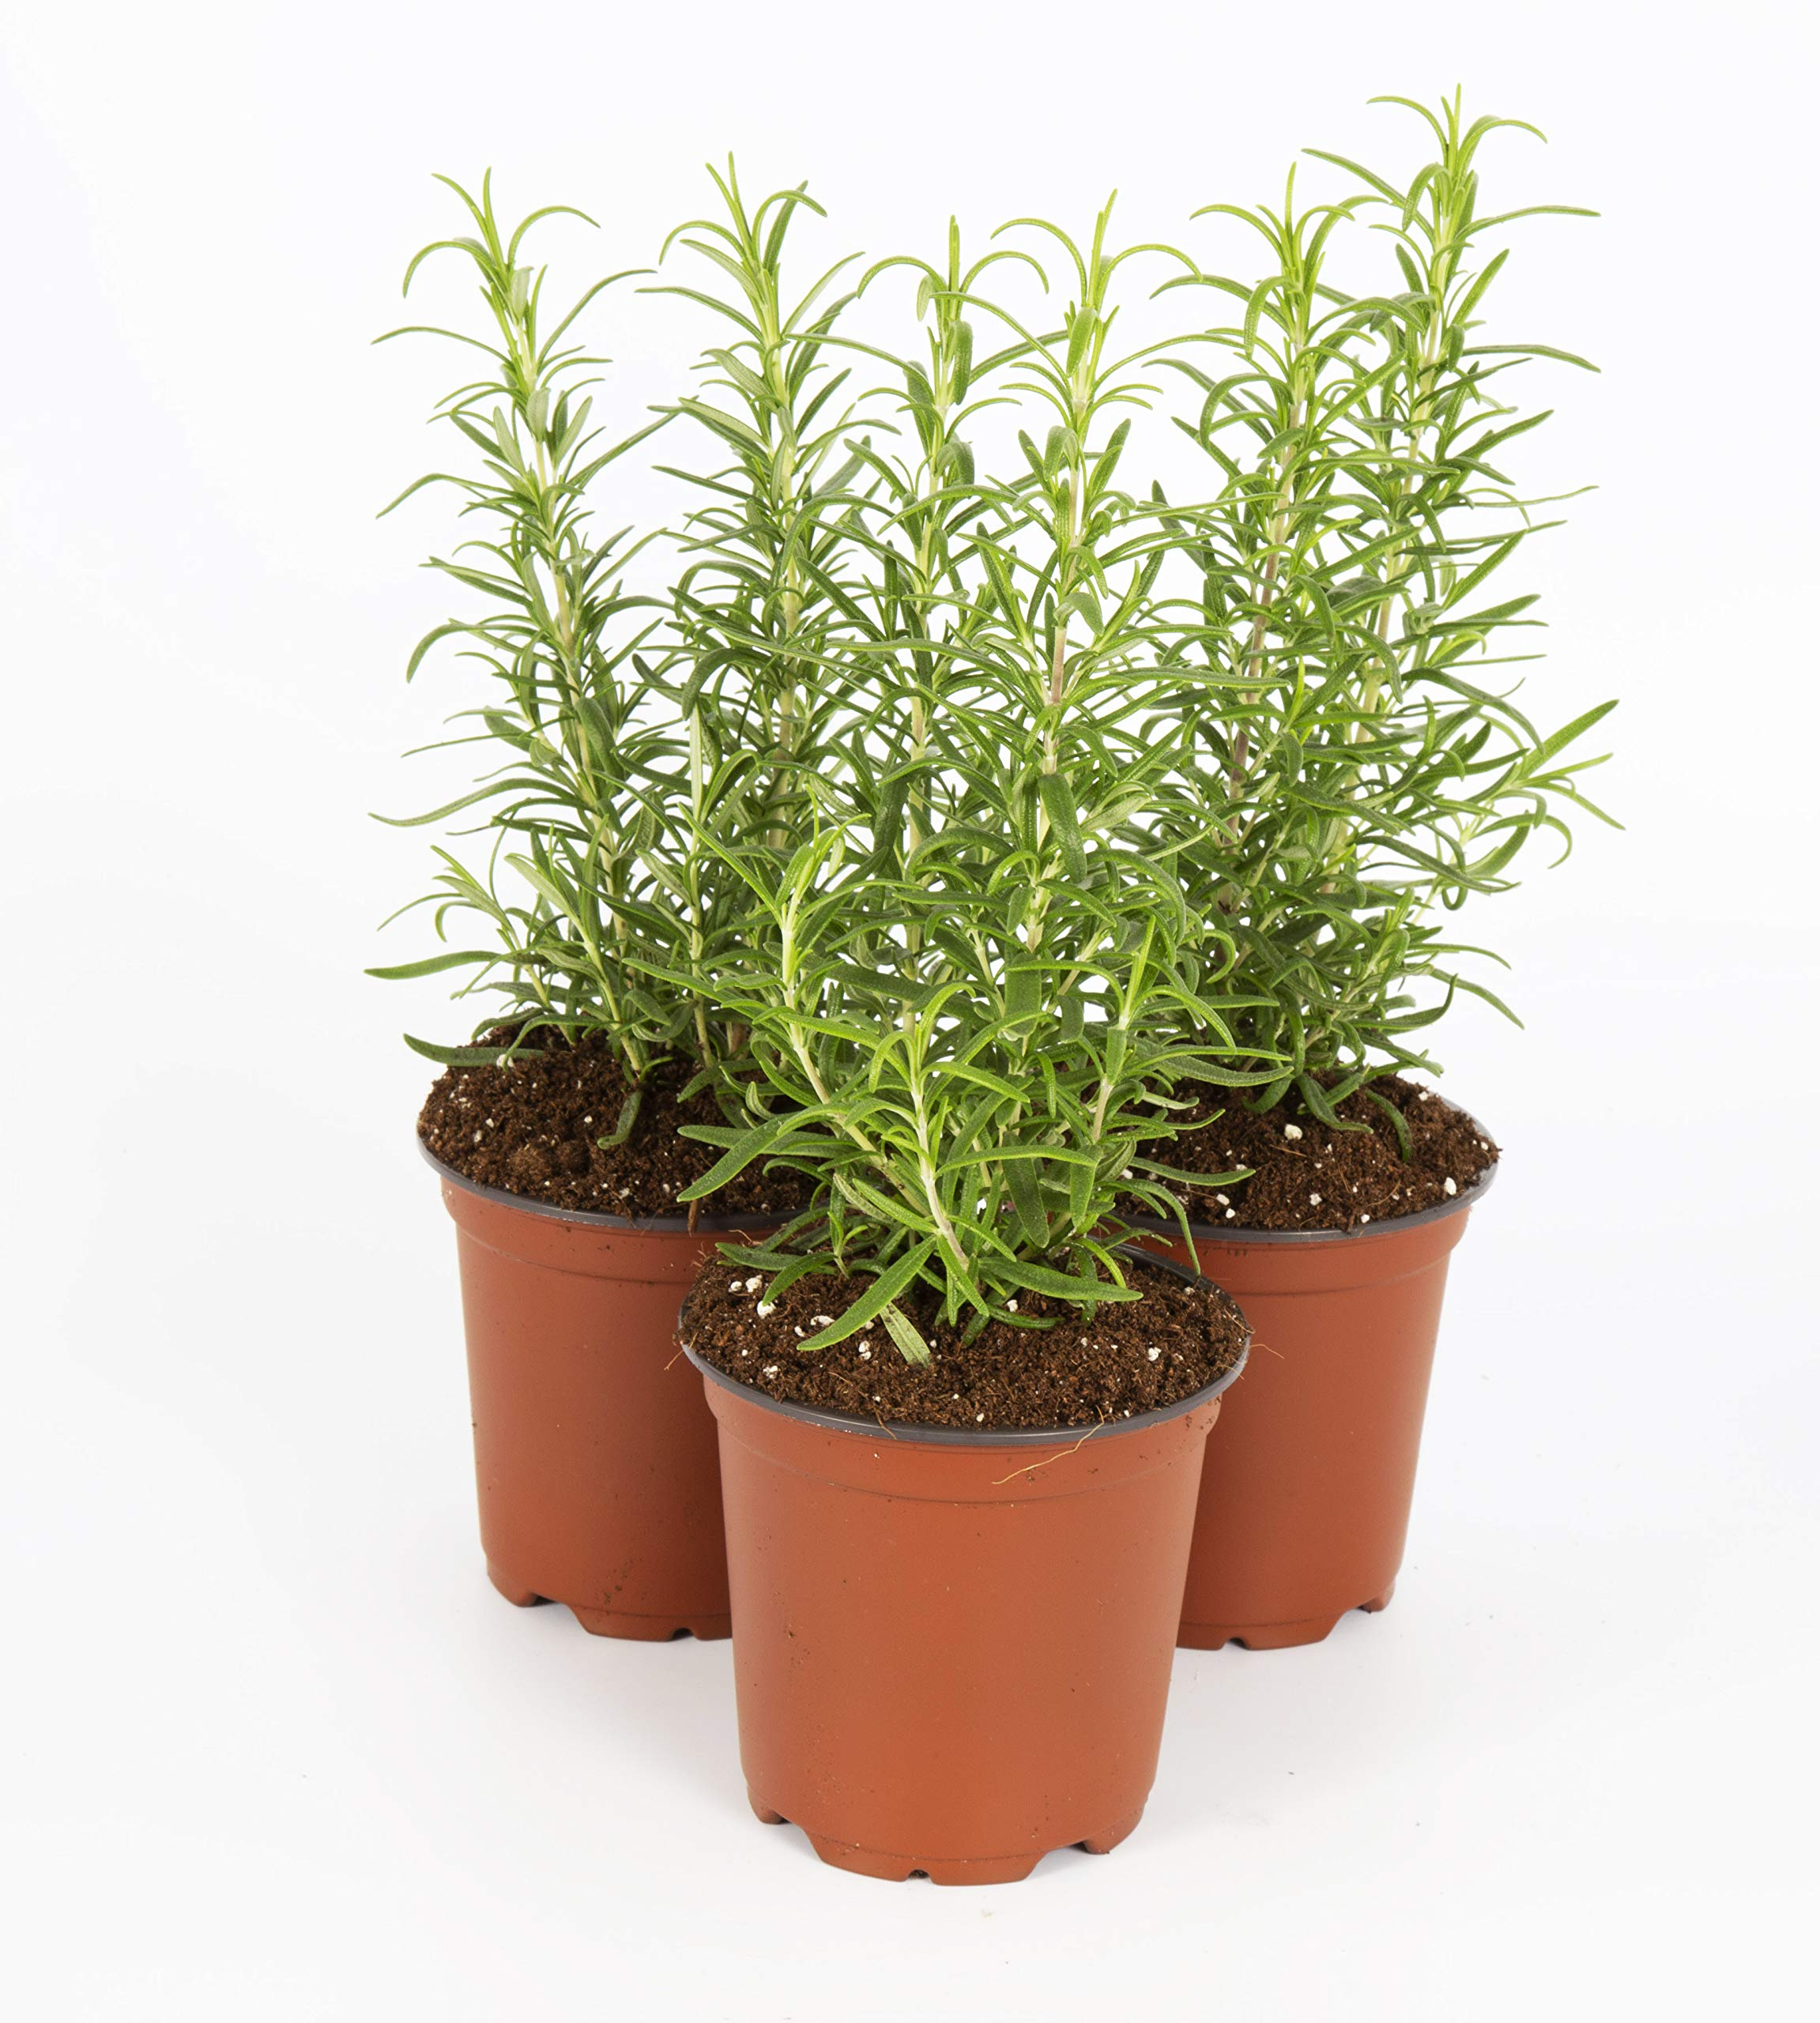 The Three Company Live Plant Aromatic Herb 4'' Rosemary (4 Per Pack)